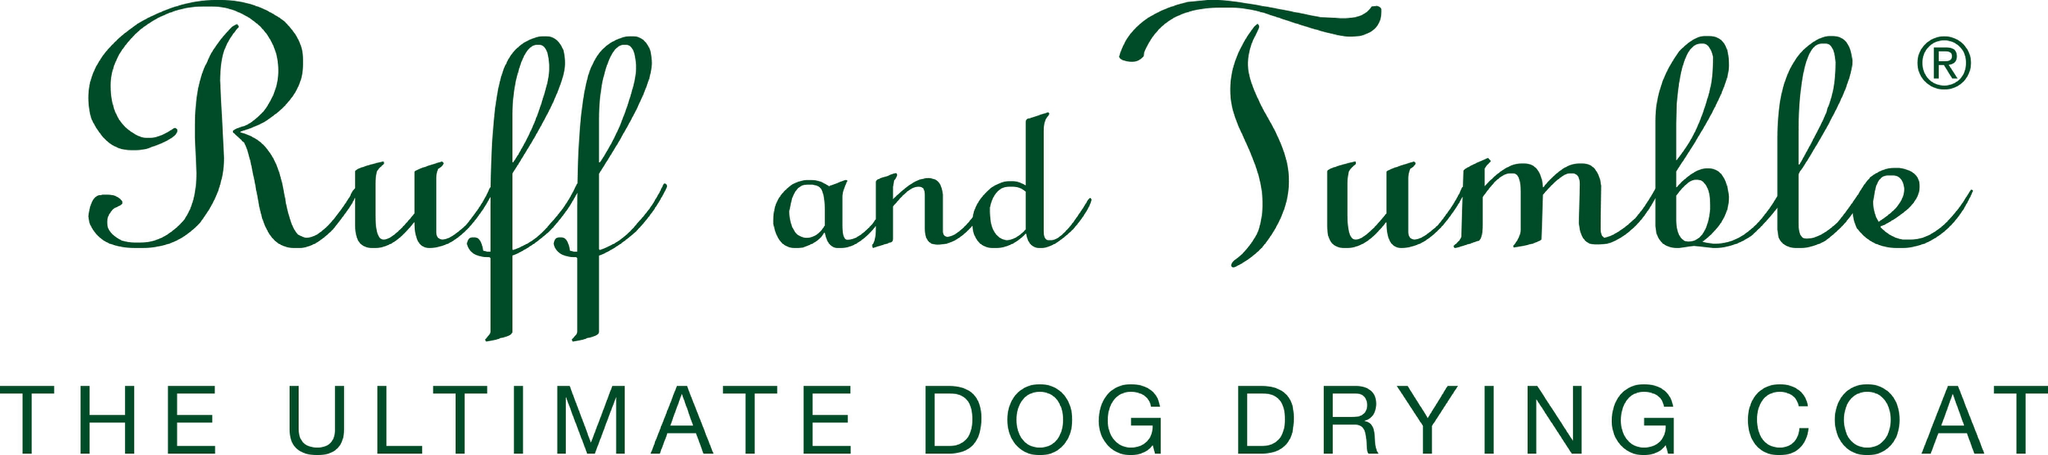 Products - PATS 2019 - All the pet brands under one roof